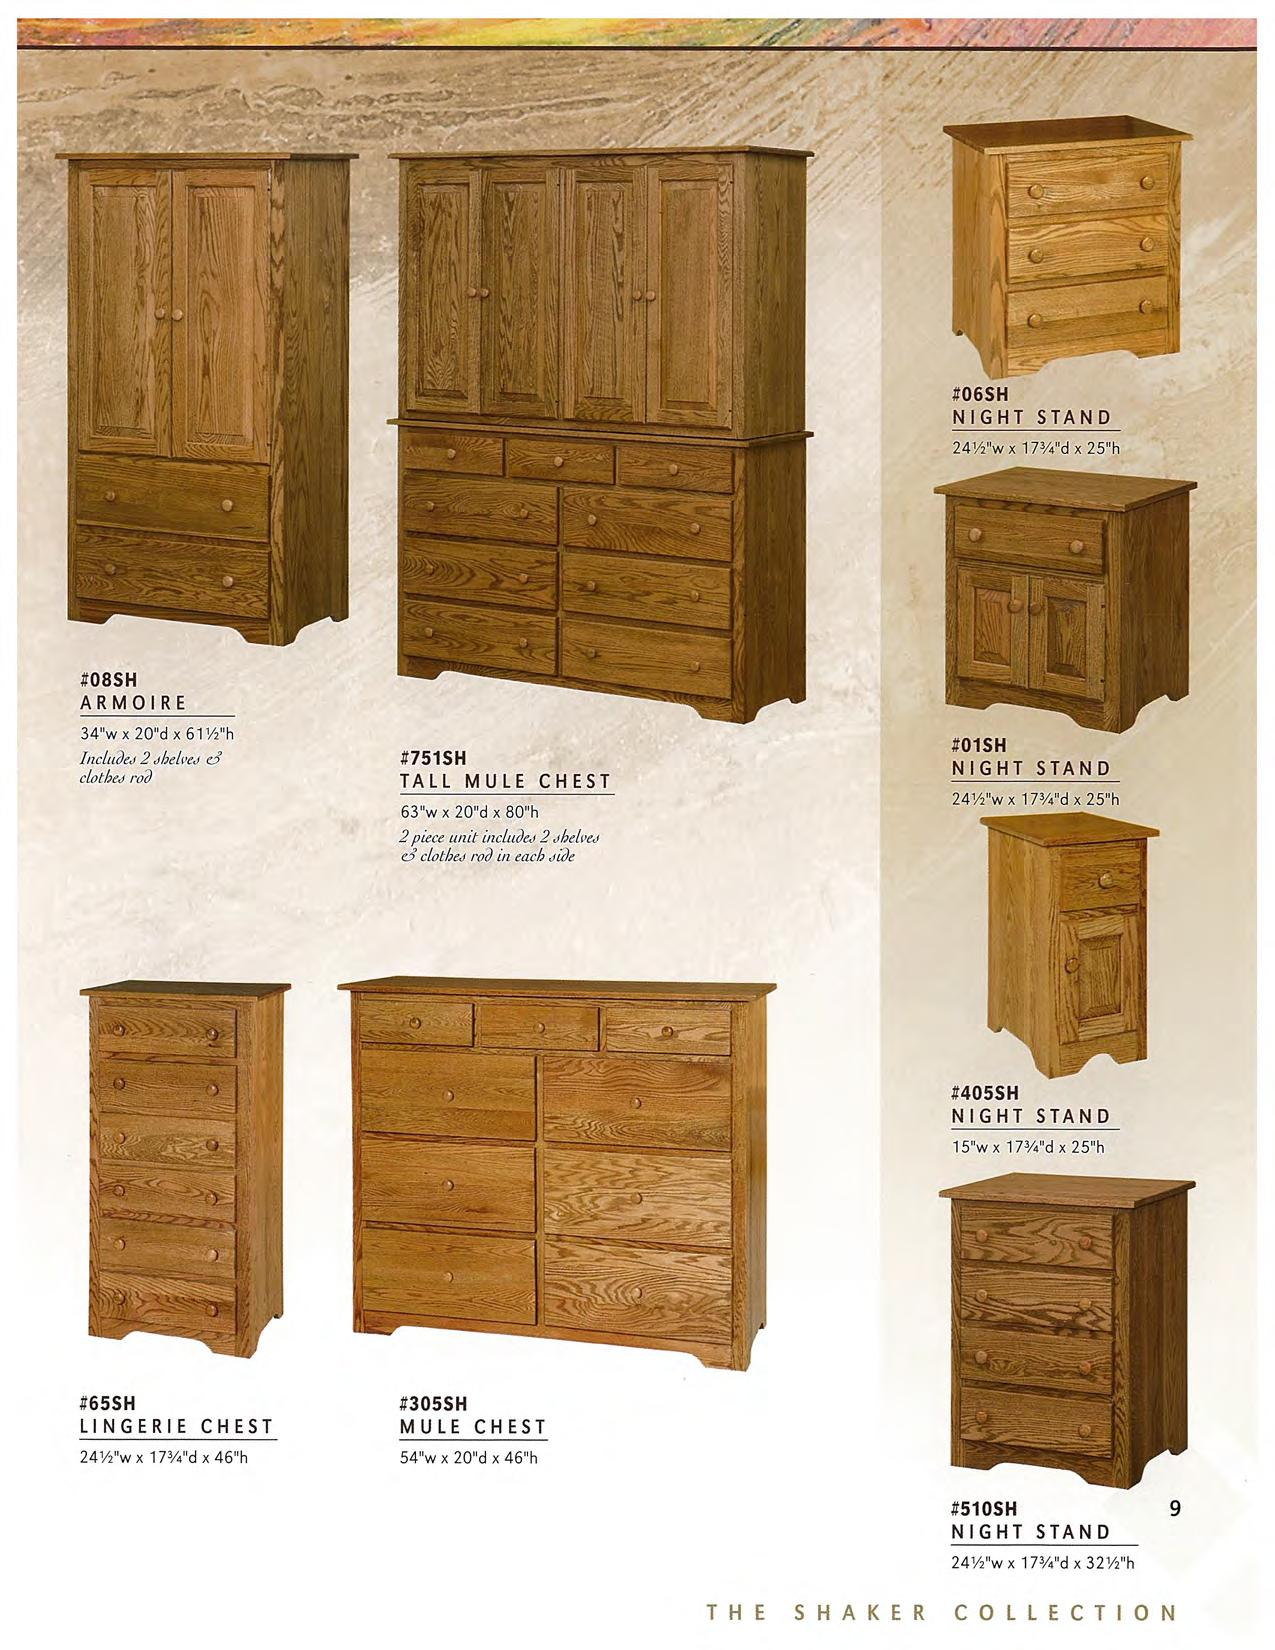 furniture-page-009